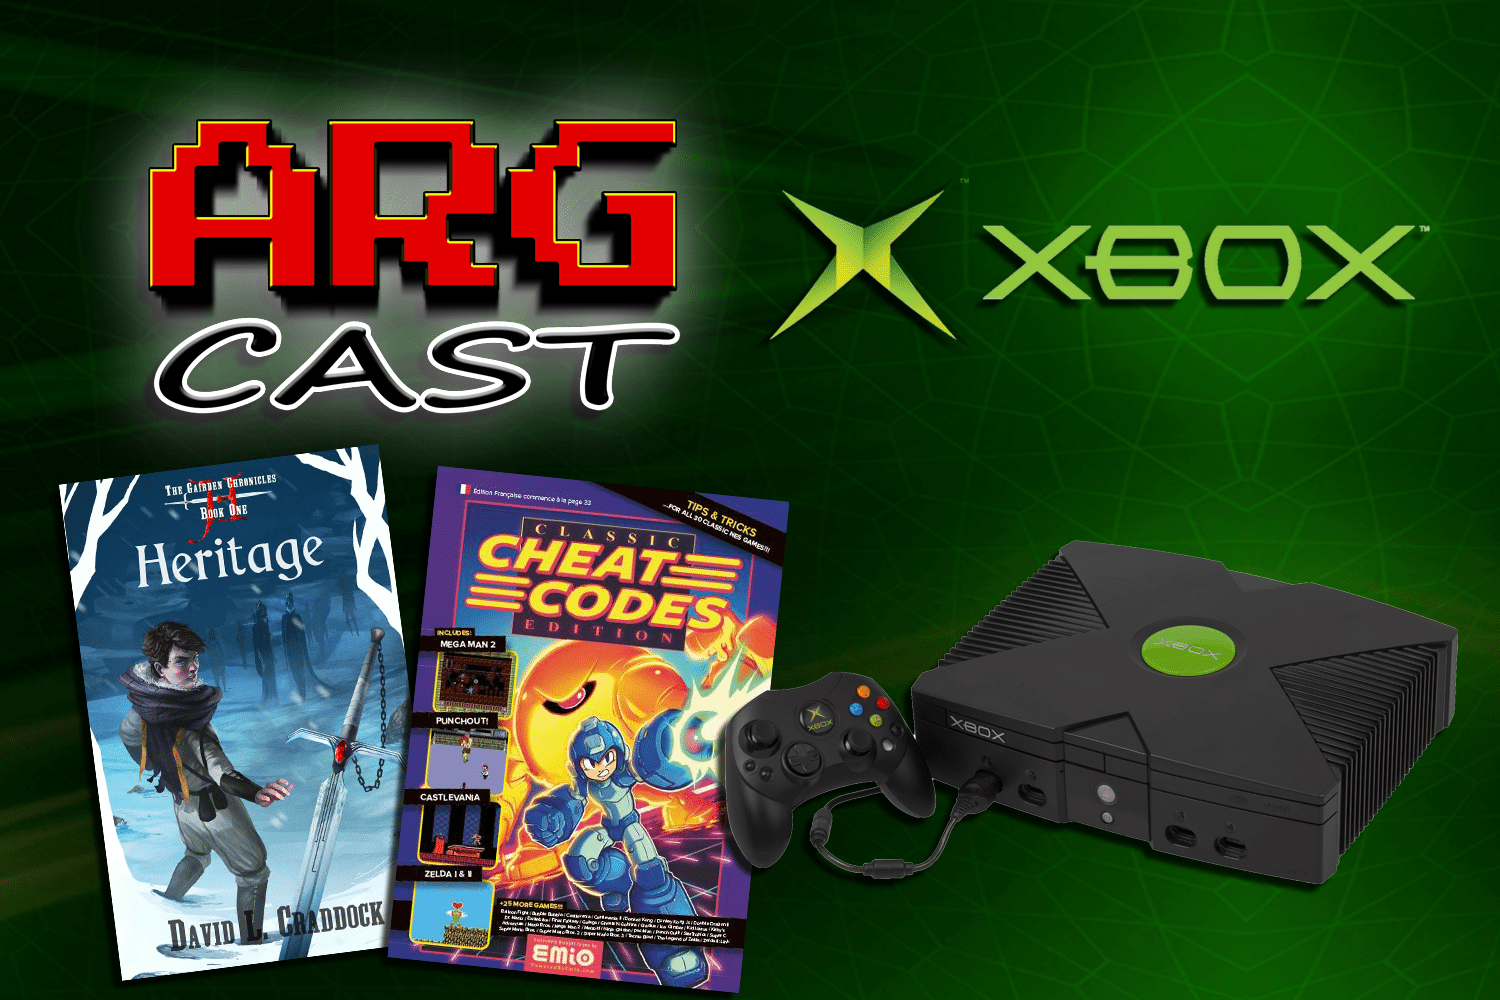 ARGcast #32: Celebrating Xbox with Games Writer David Craddock